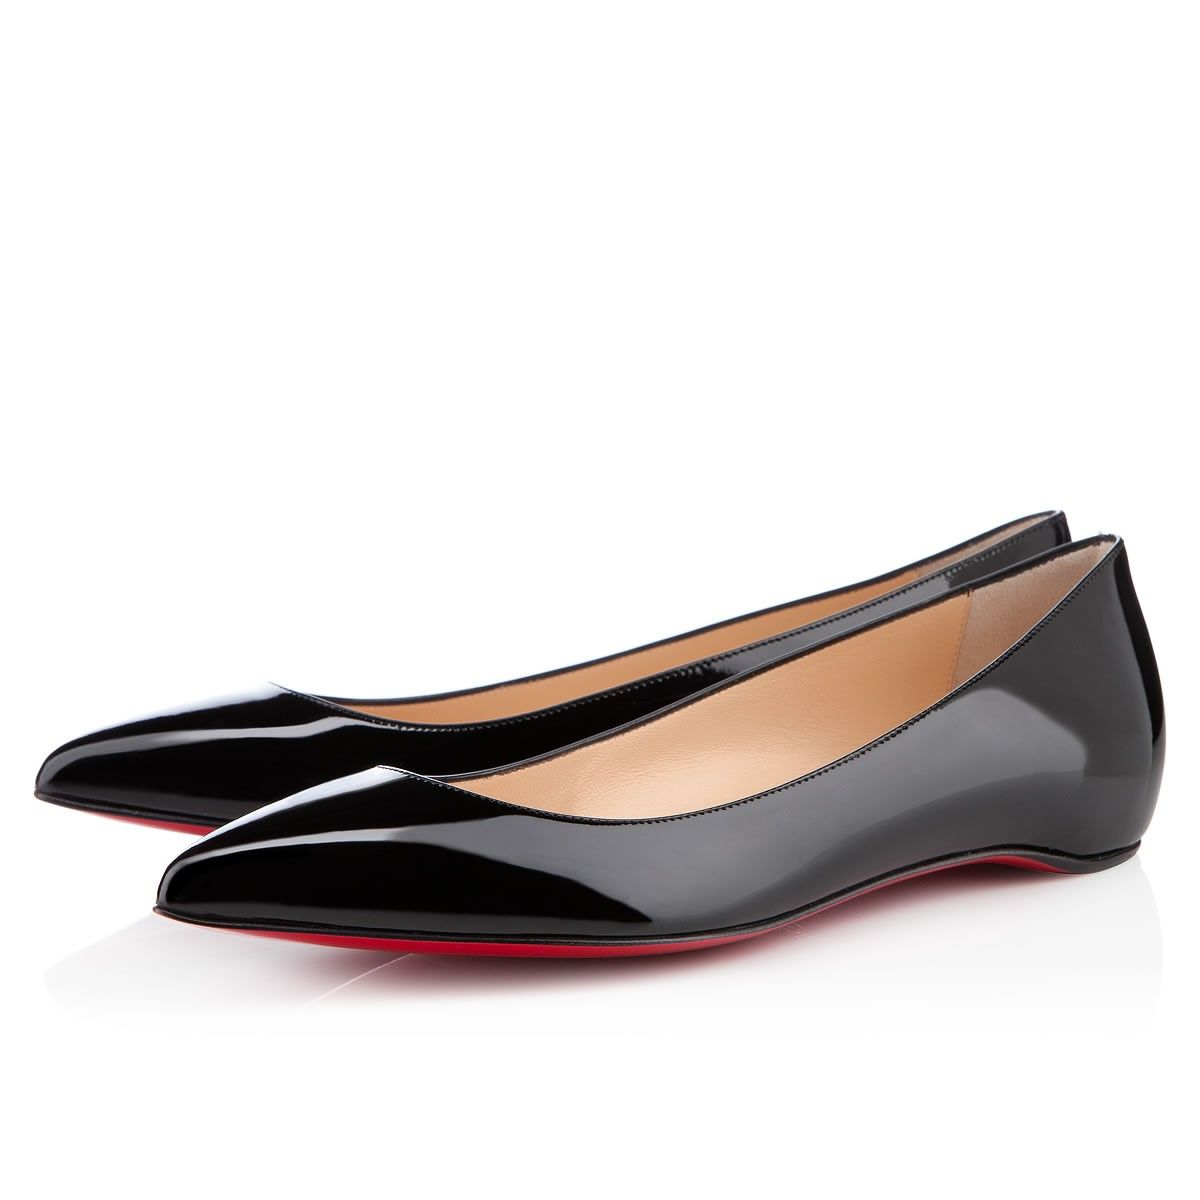 PIGALLE PATENT FLAT, Patent Leather, black, flats, womens shoes